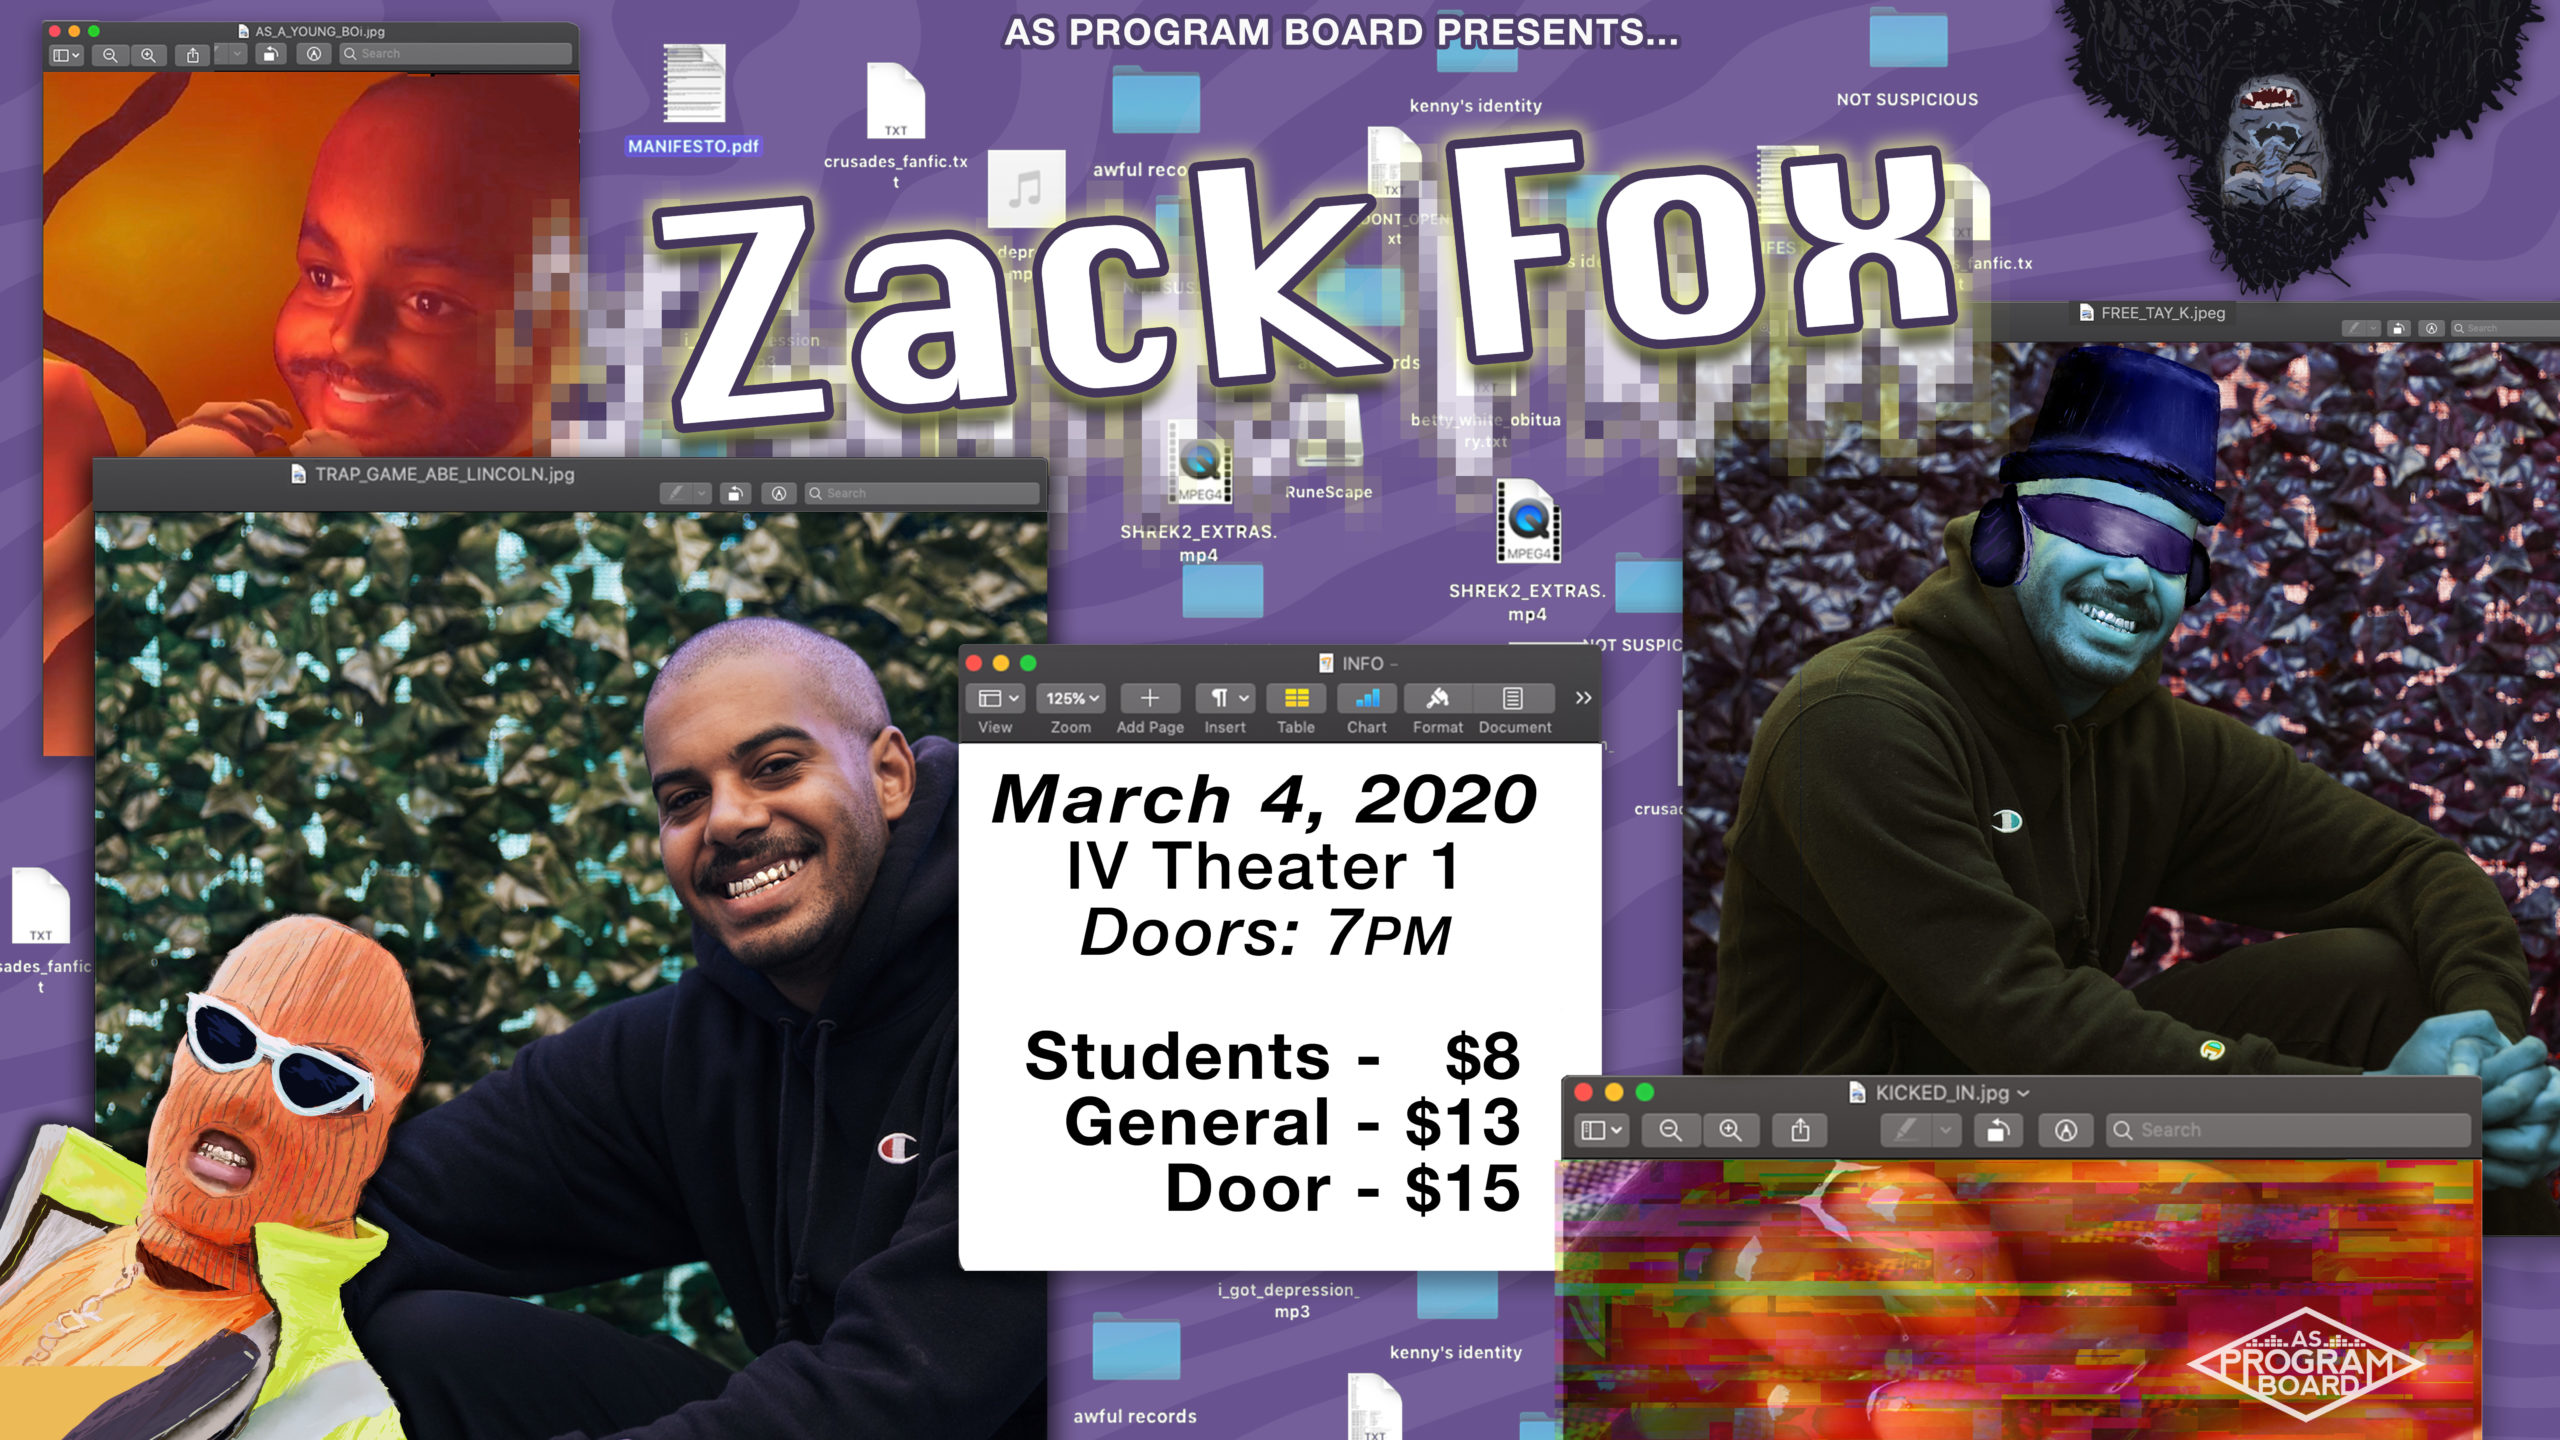 A Night of Comedy with Zack Fox